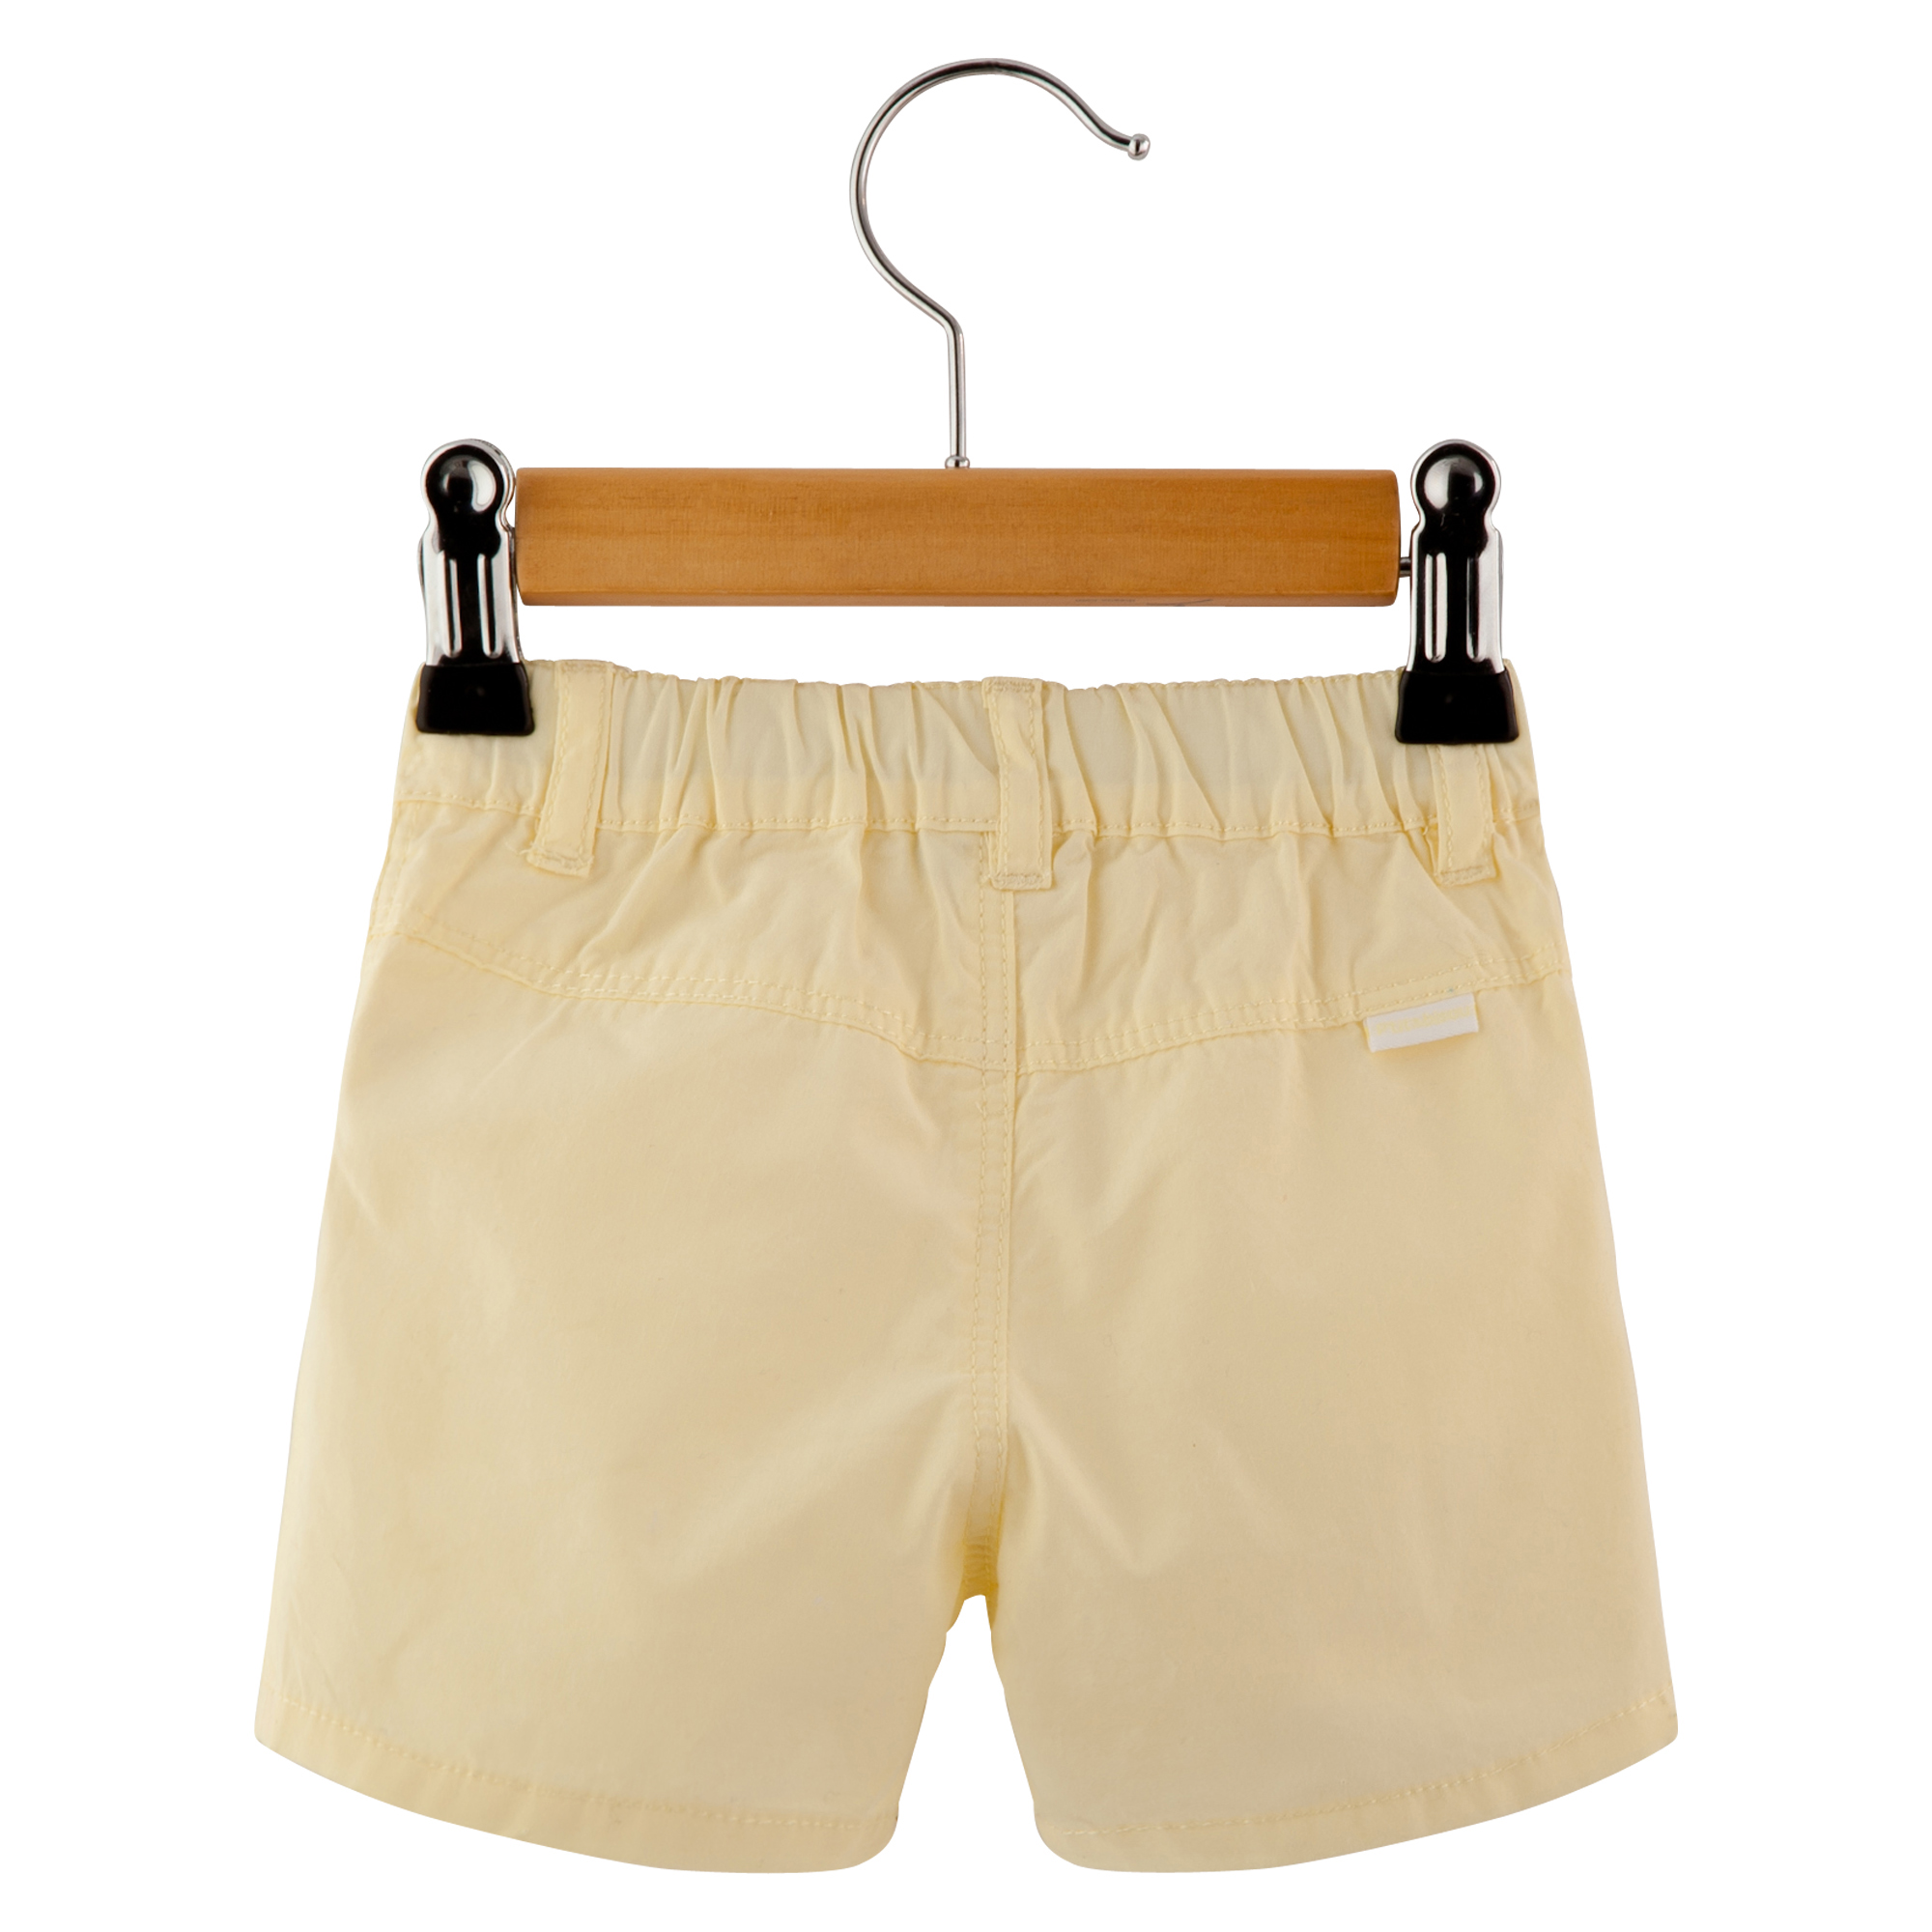 Short collection Pomme d'Amour Jaune  de P'tit bisou